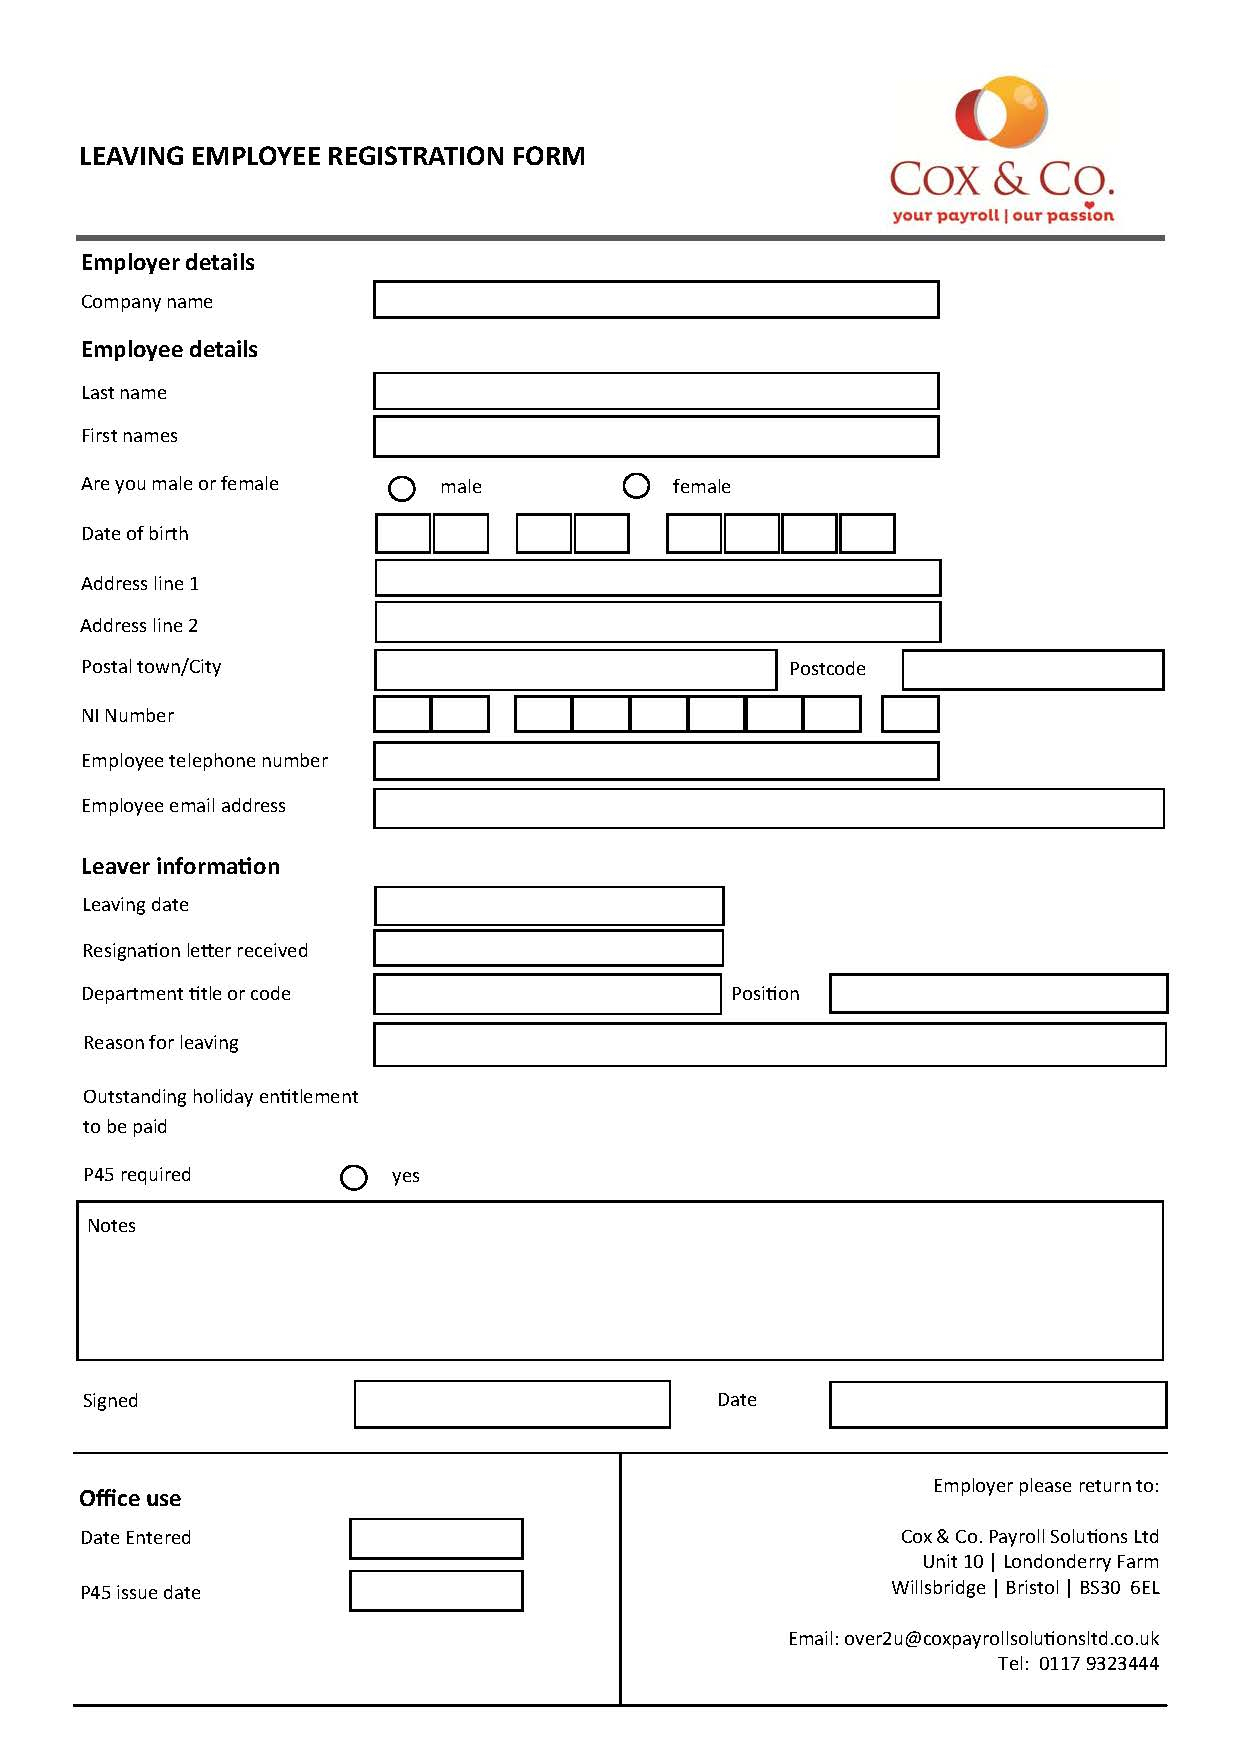 Payroll Forms   Cox & Co Intended For Payroll Spreadsheet Template Uk